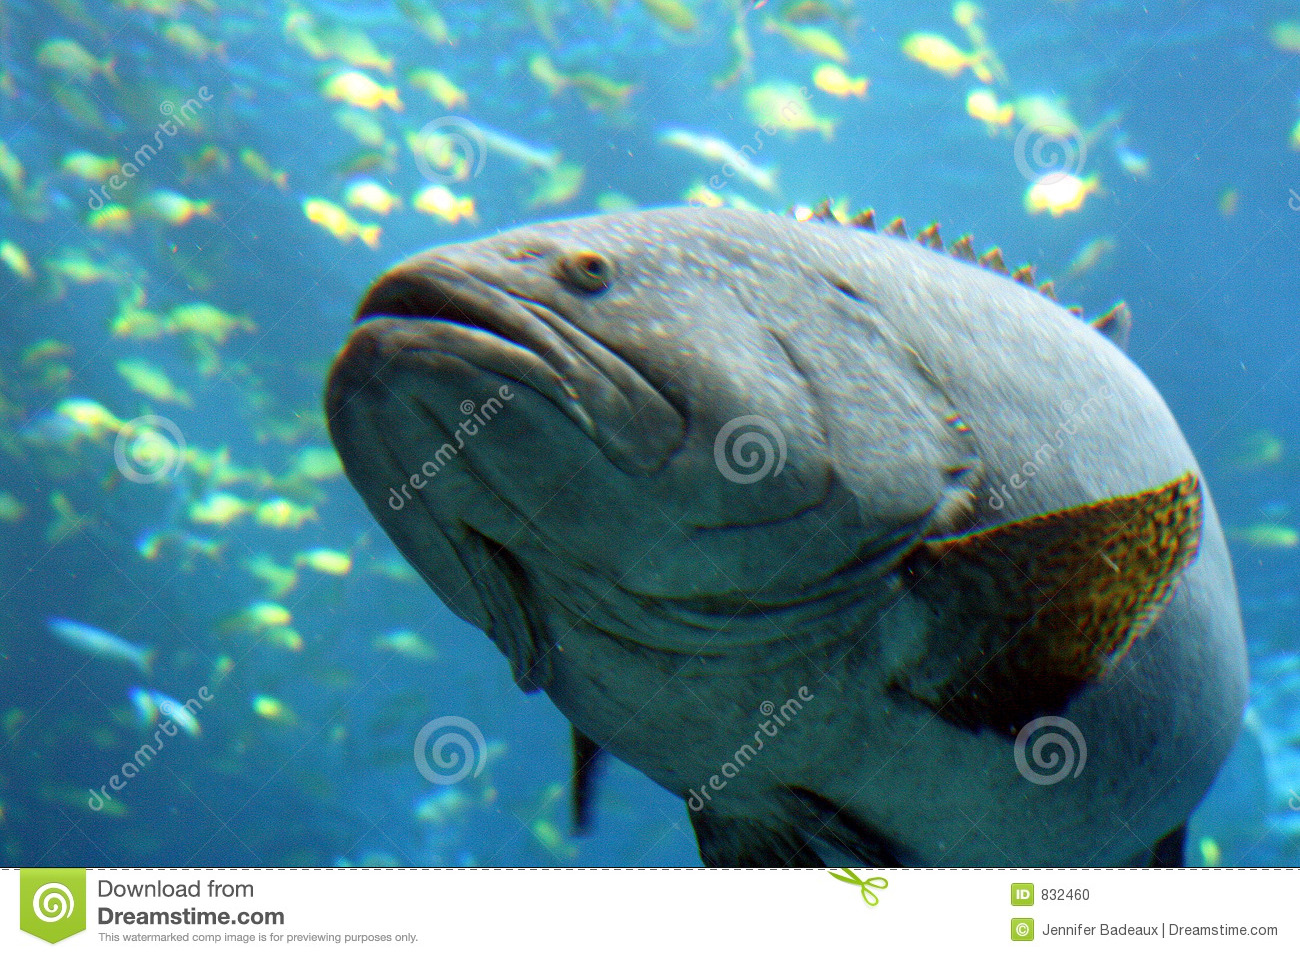 Here fish fishy stock photo image 832460 for Dream about fish out of water